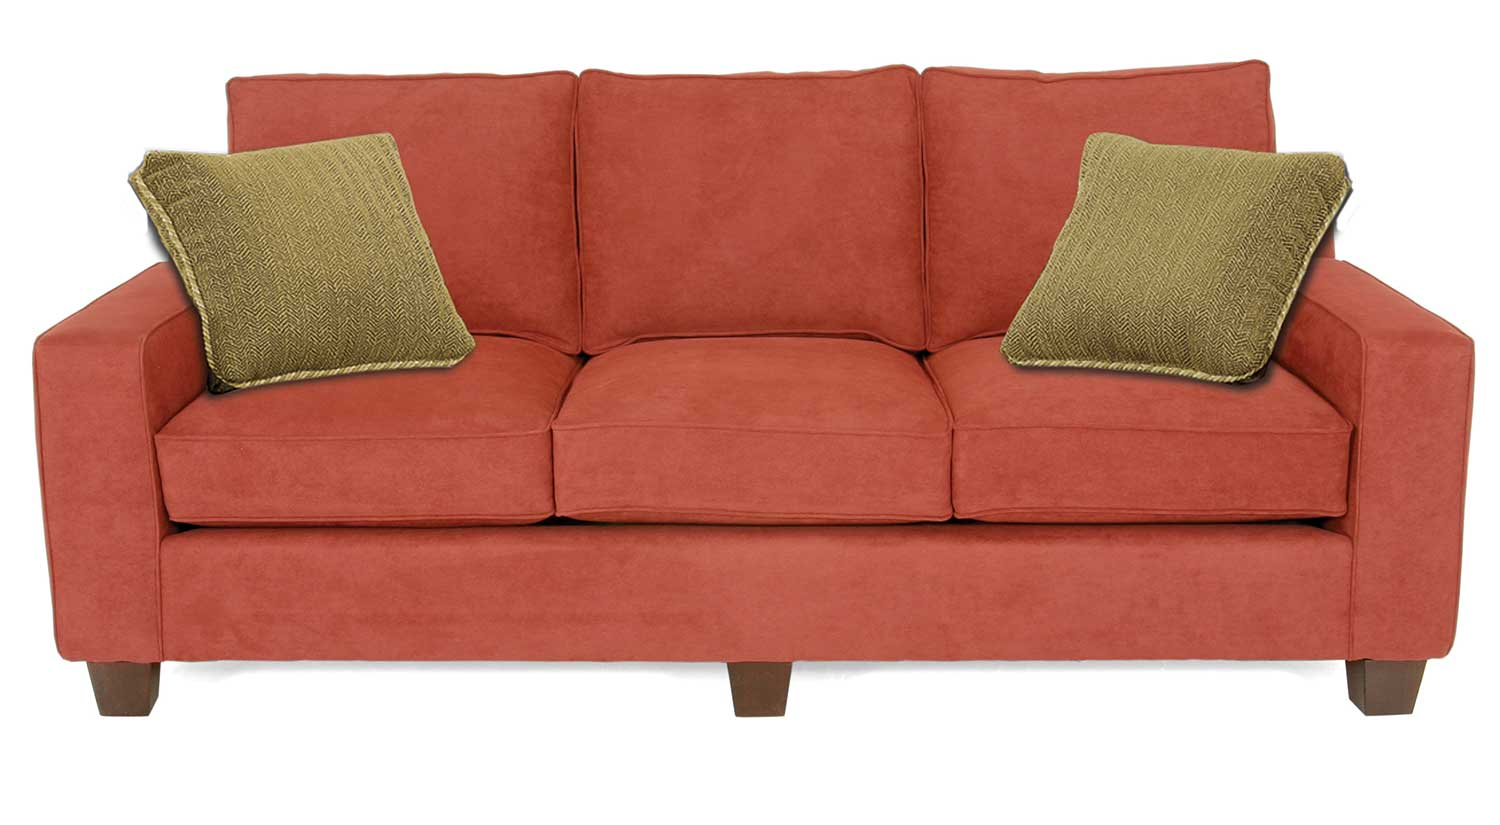 Circle Furniture Metro Sofa Modern Designer